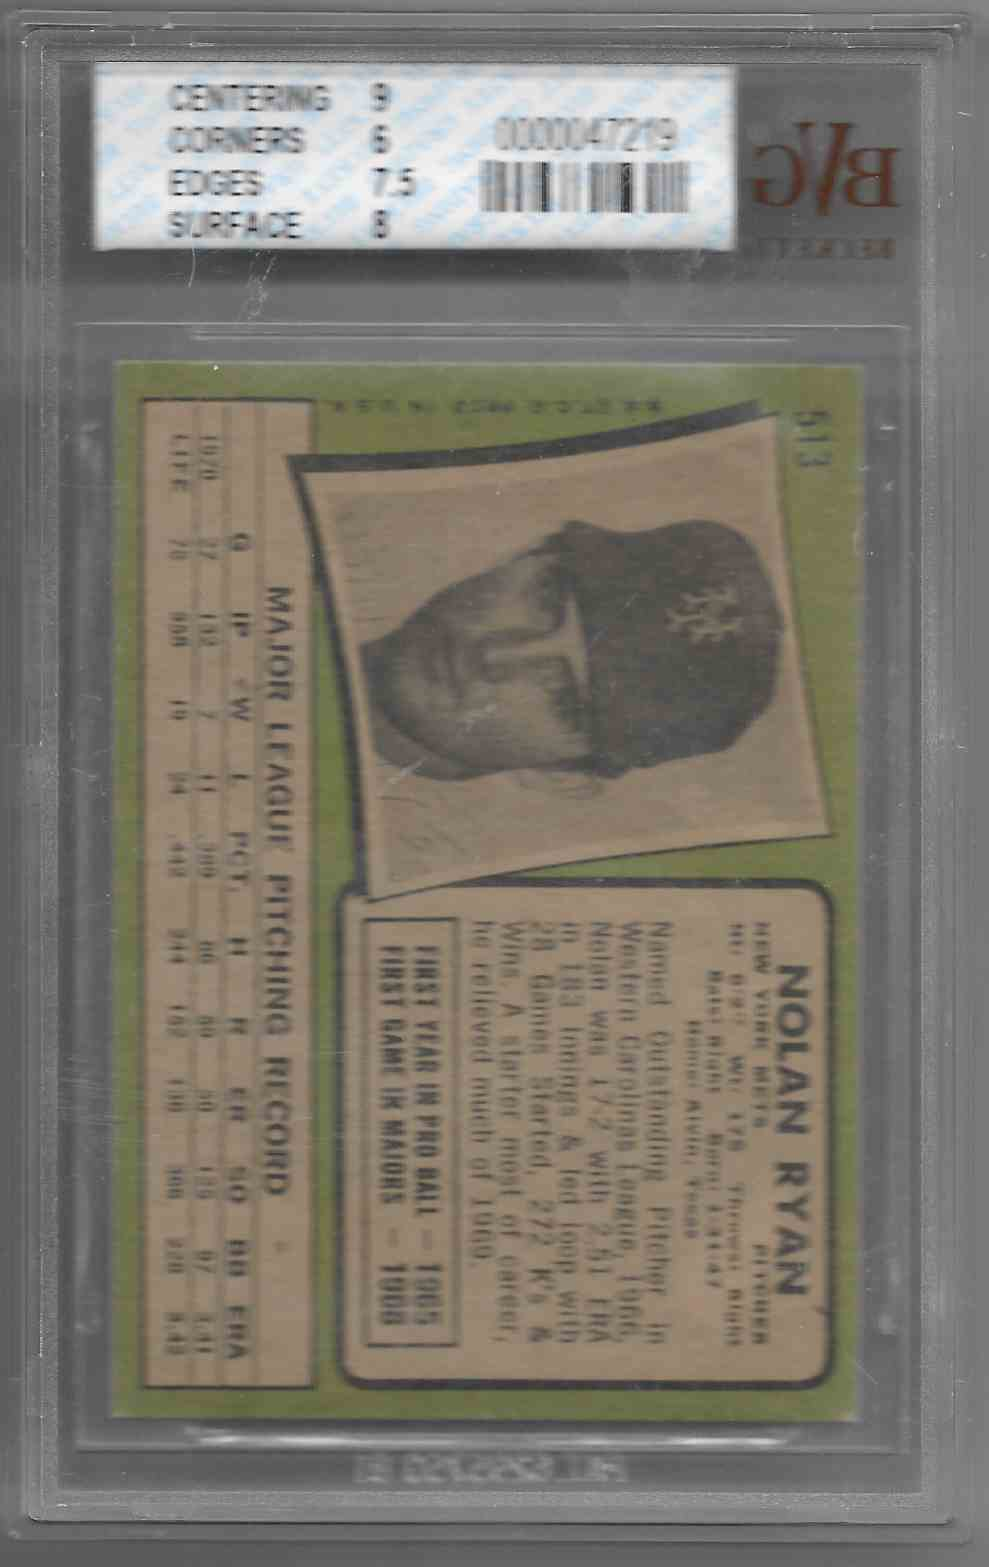 1971 Topps Nolan Ryan #513 card back image